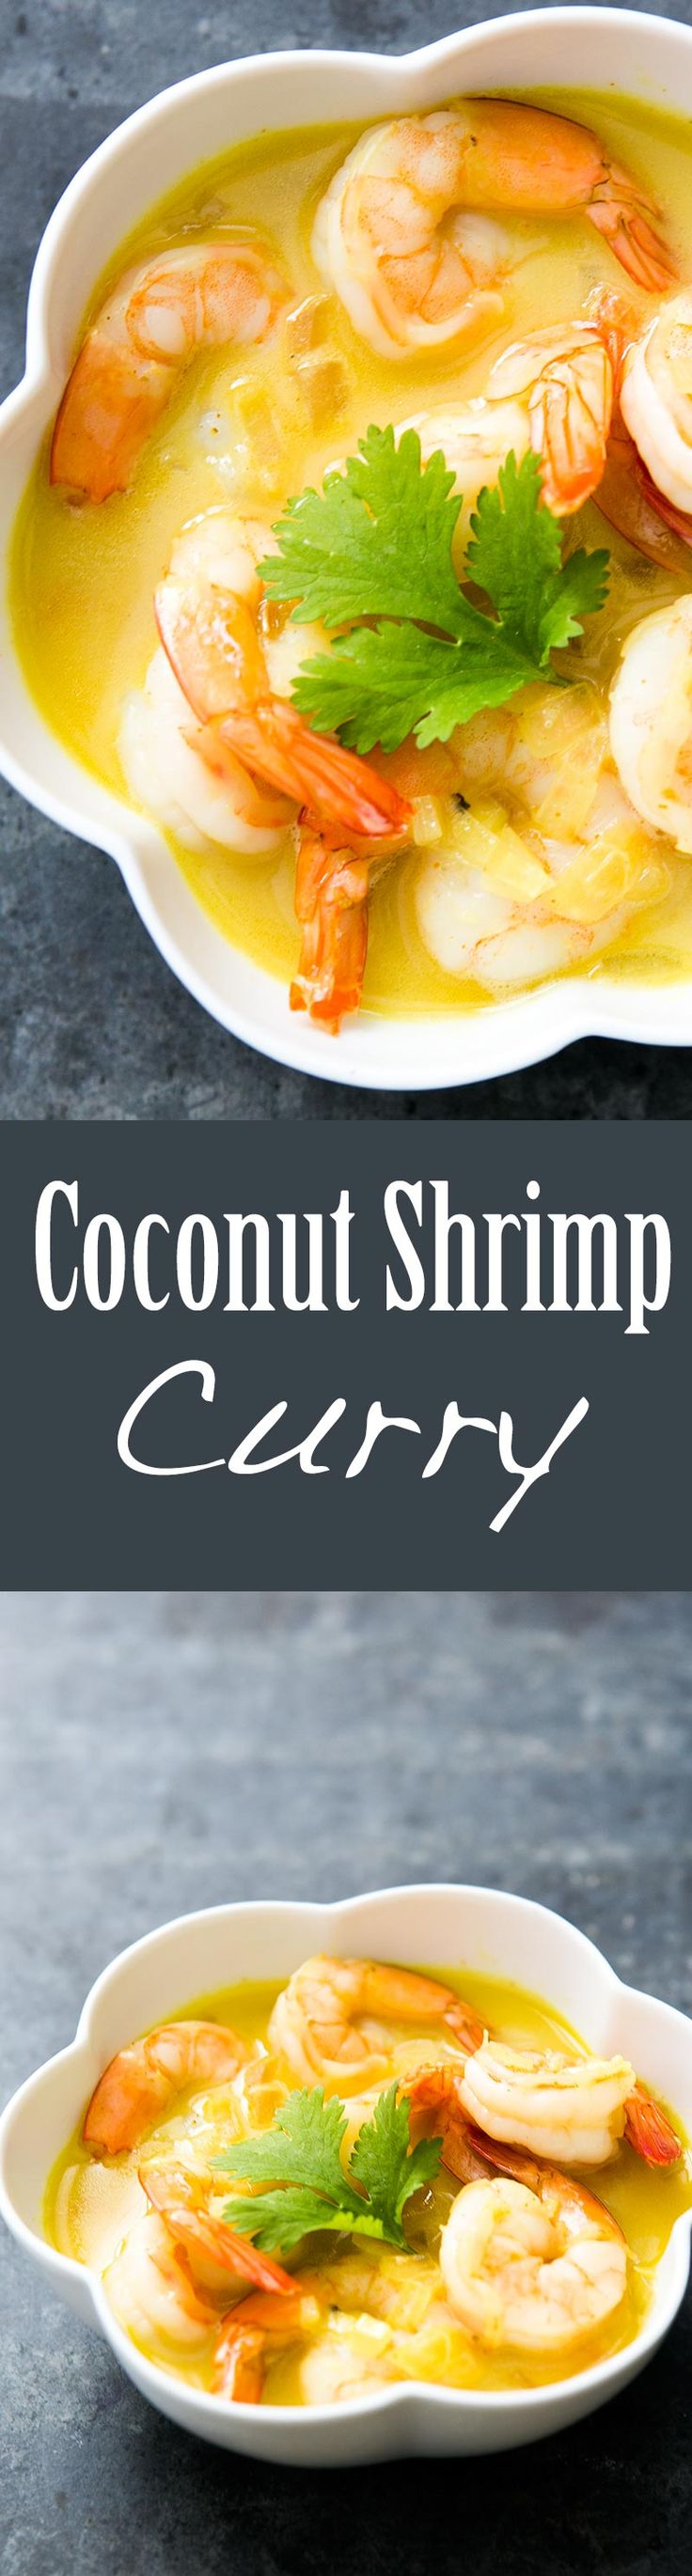 Delicious Coconut Curry Shrimp! Quick and EASY, perfect for a midweek meal. Takes only 30 minutes to make! On SimplyRecipes.com